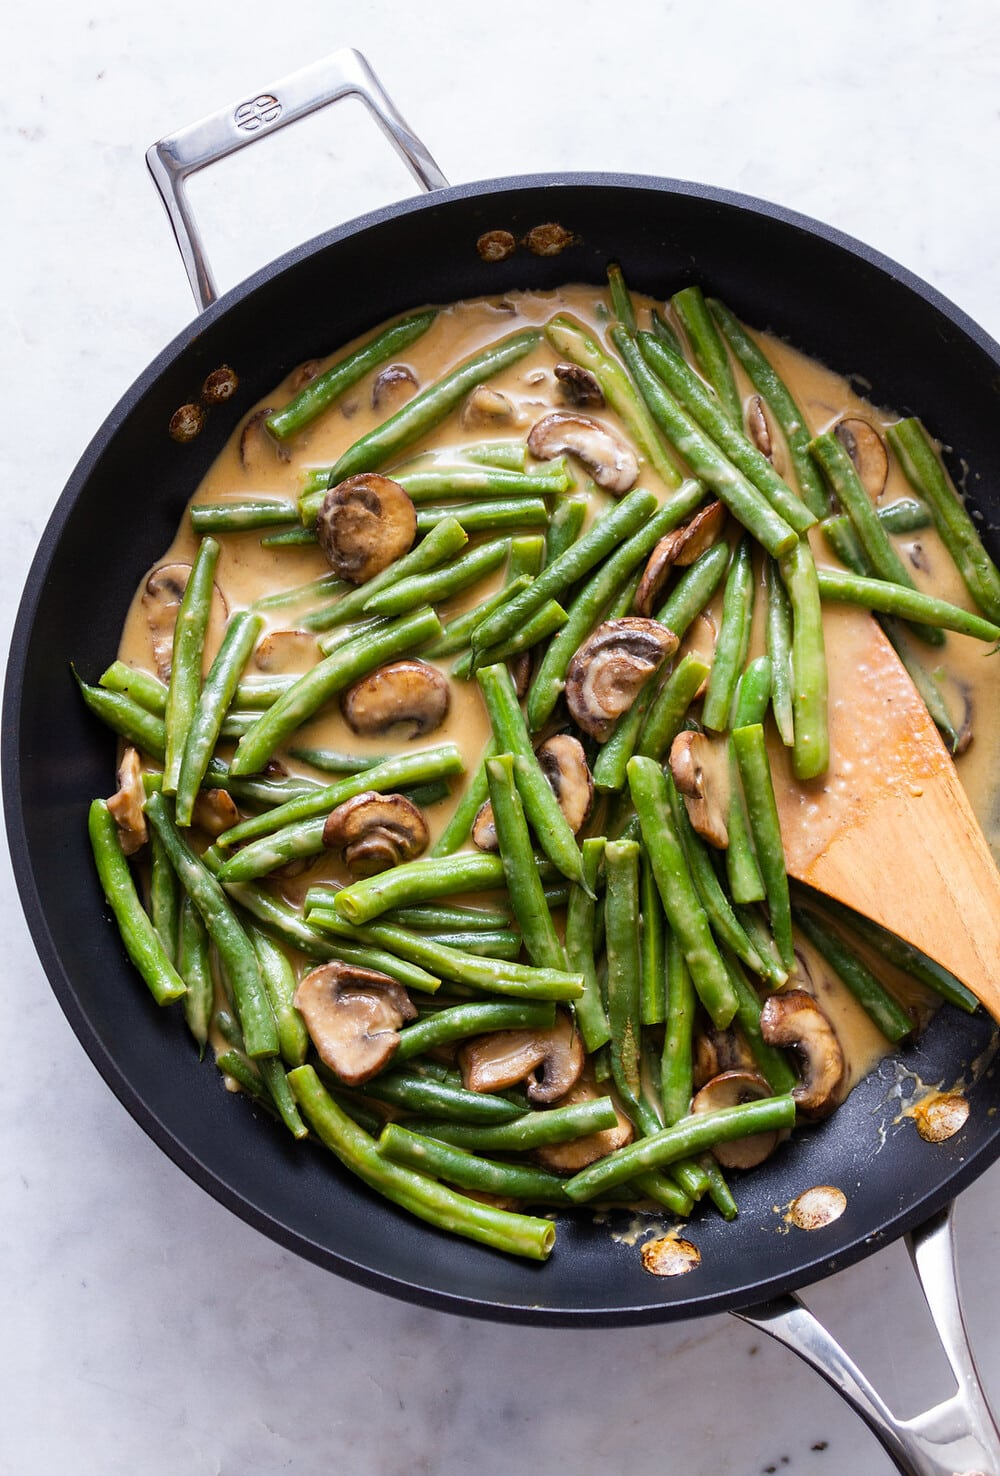 top down view of healthy vegan green bean casserole just finished cooking in a skillet.